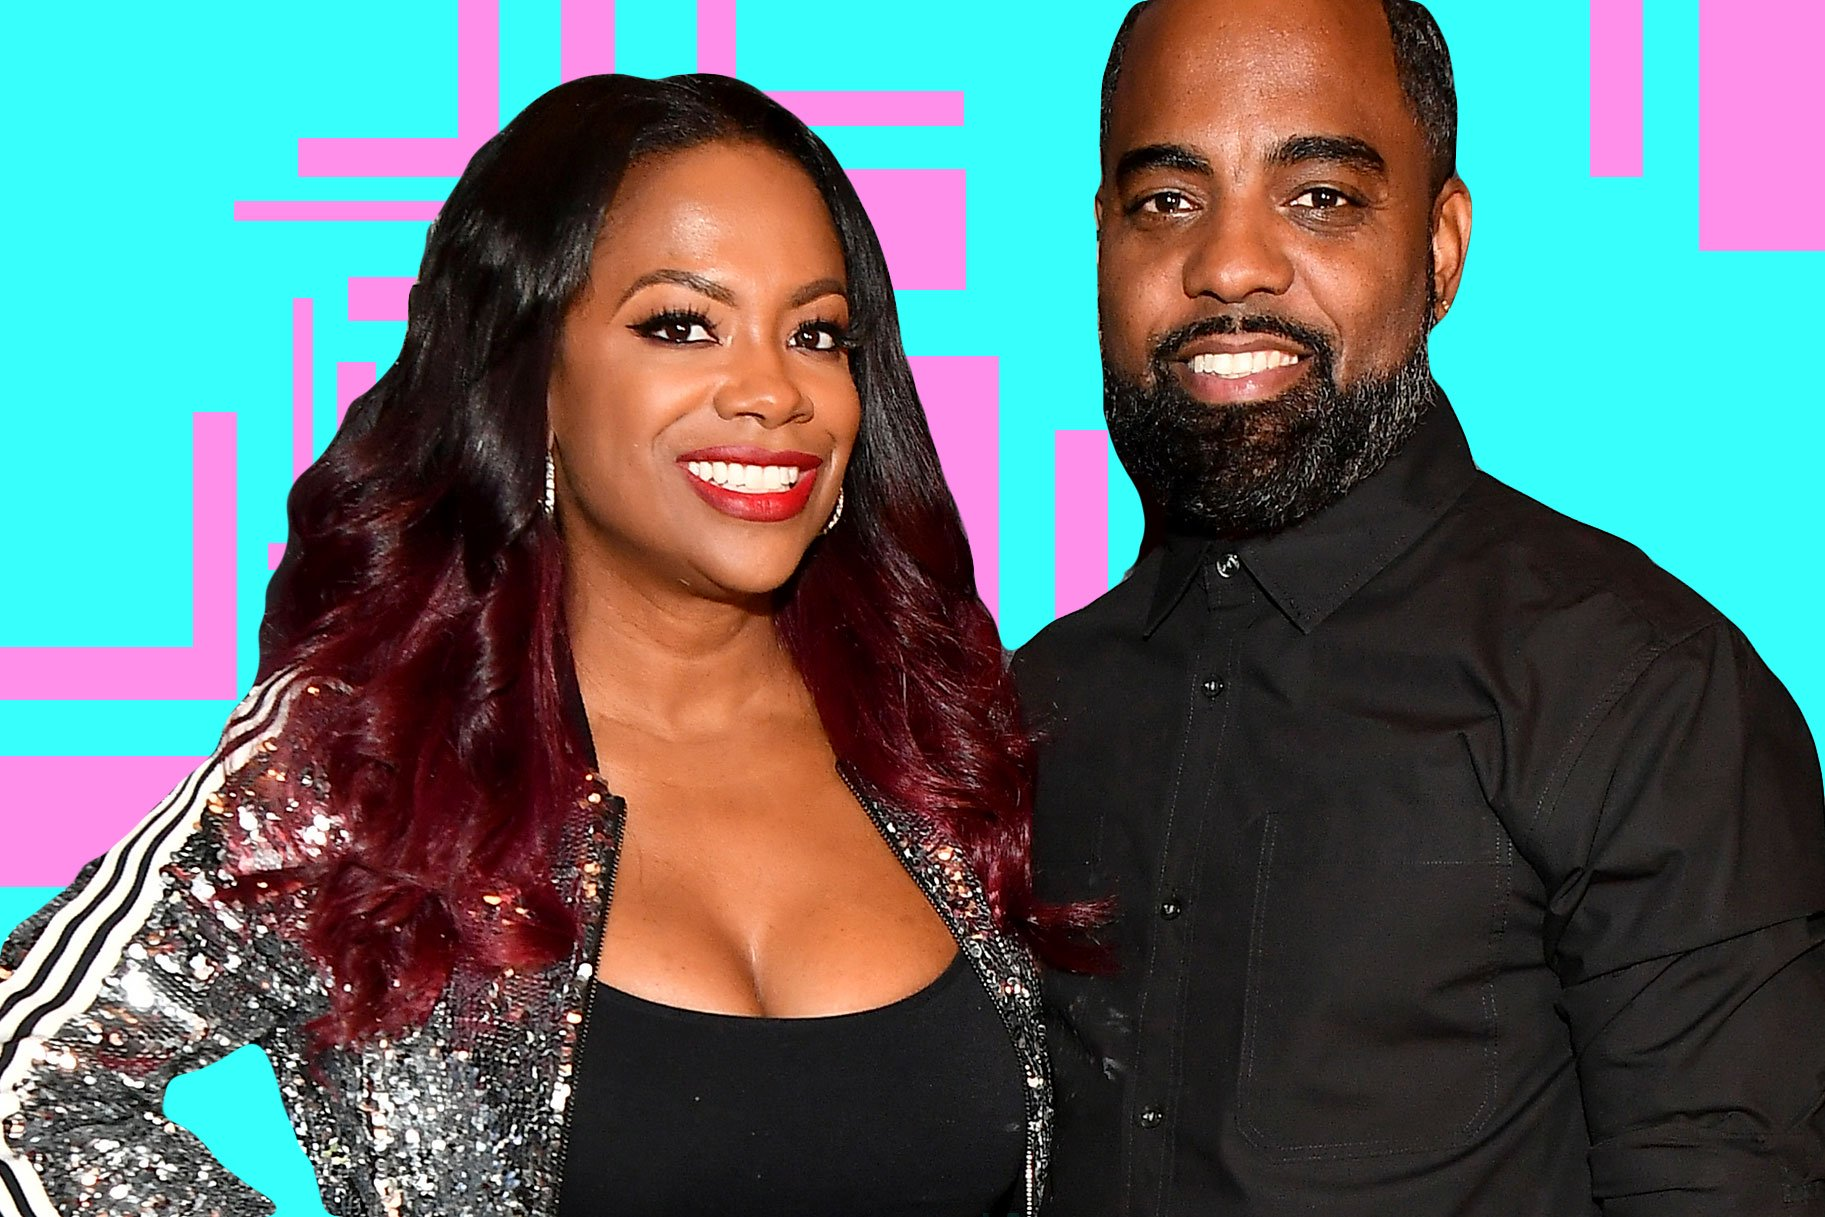 Kandi Burruss' Husband, Todd Tucker Shares His Dream Car With Fans – See The Video!